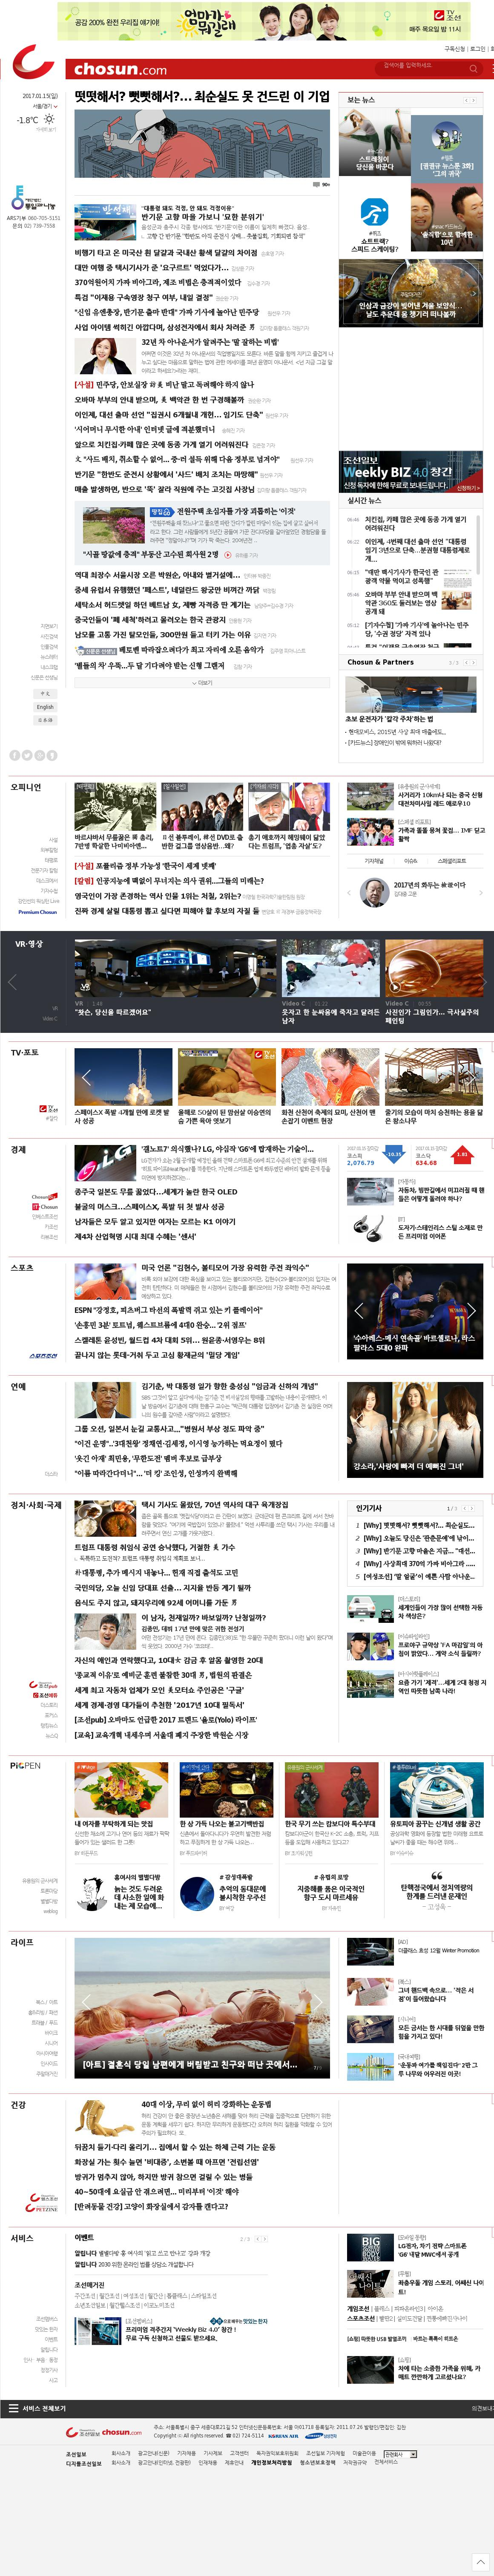 chosun.com at Sunday Jan. 15, 2017, 7:01 a.m. UTC